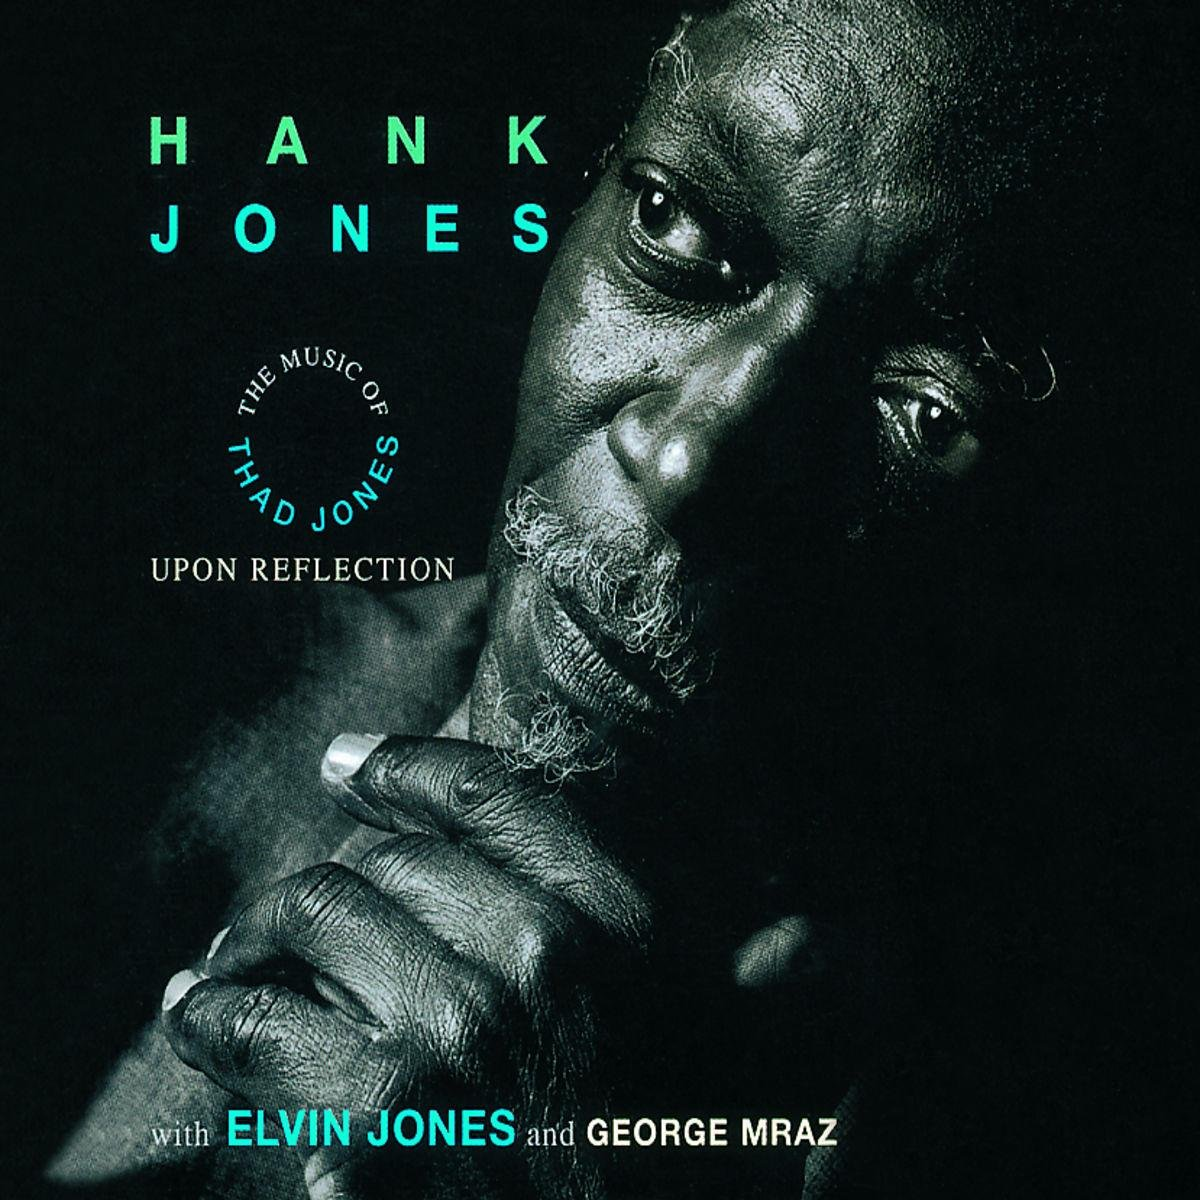 JONES, HANK - Upon Reflection: Music of Thad Jones - Amazon.com Music